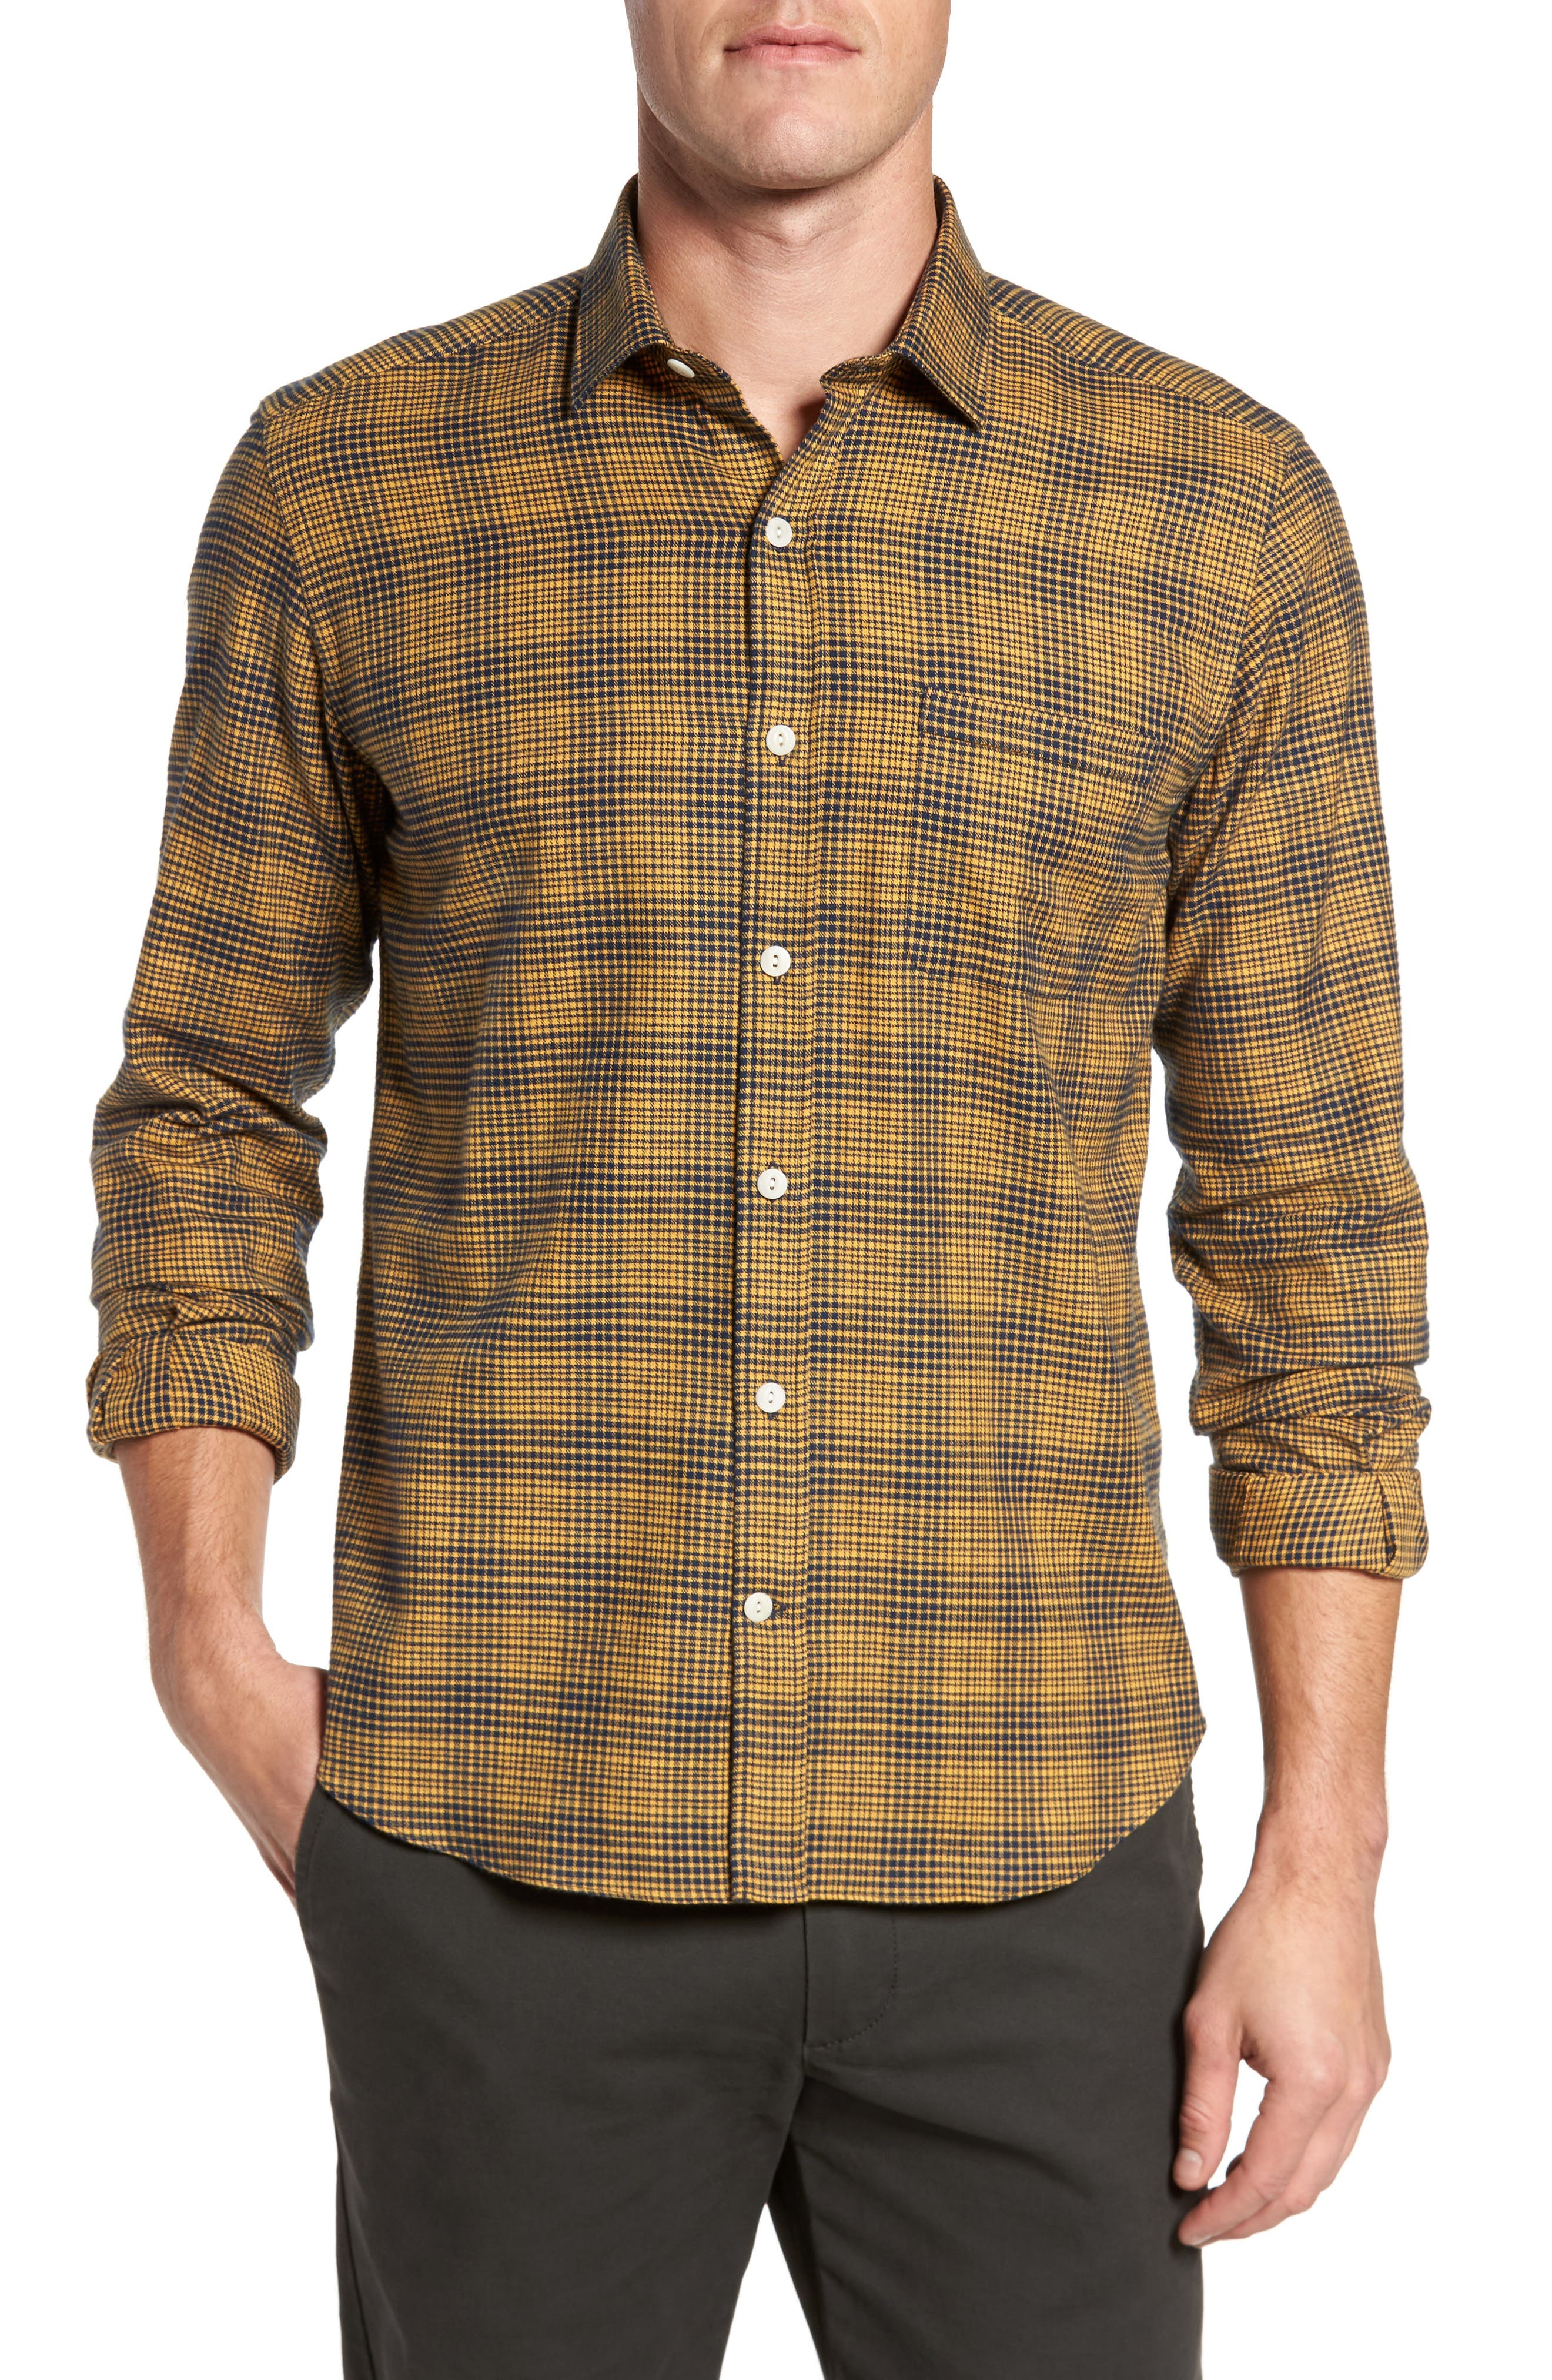 Culturata Glen Plaid Sport Shirt